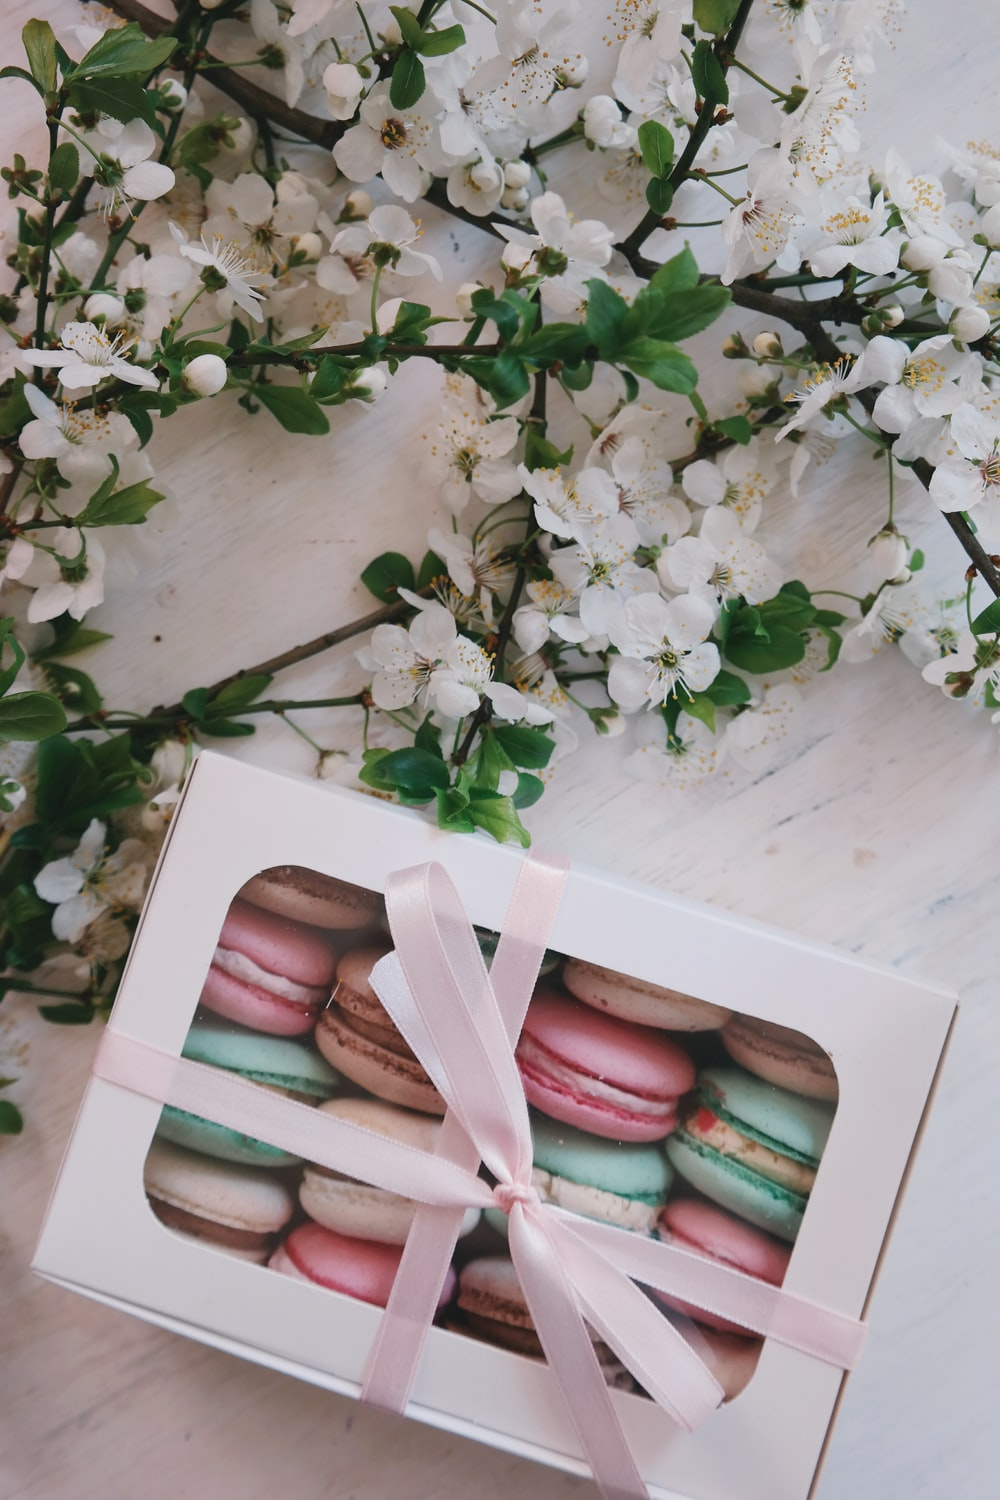 French macarons in white box